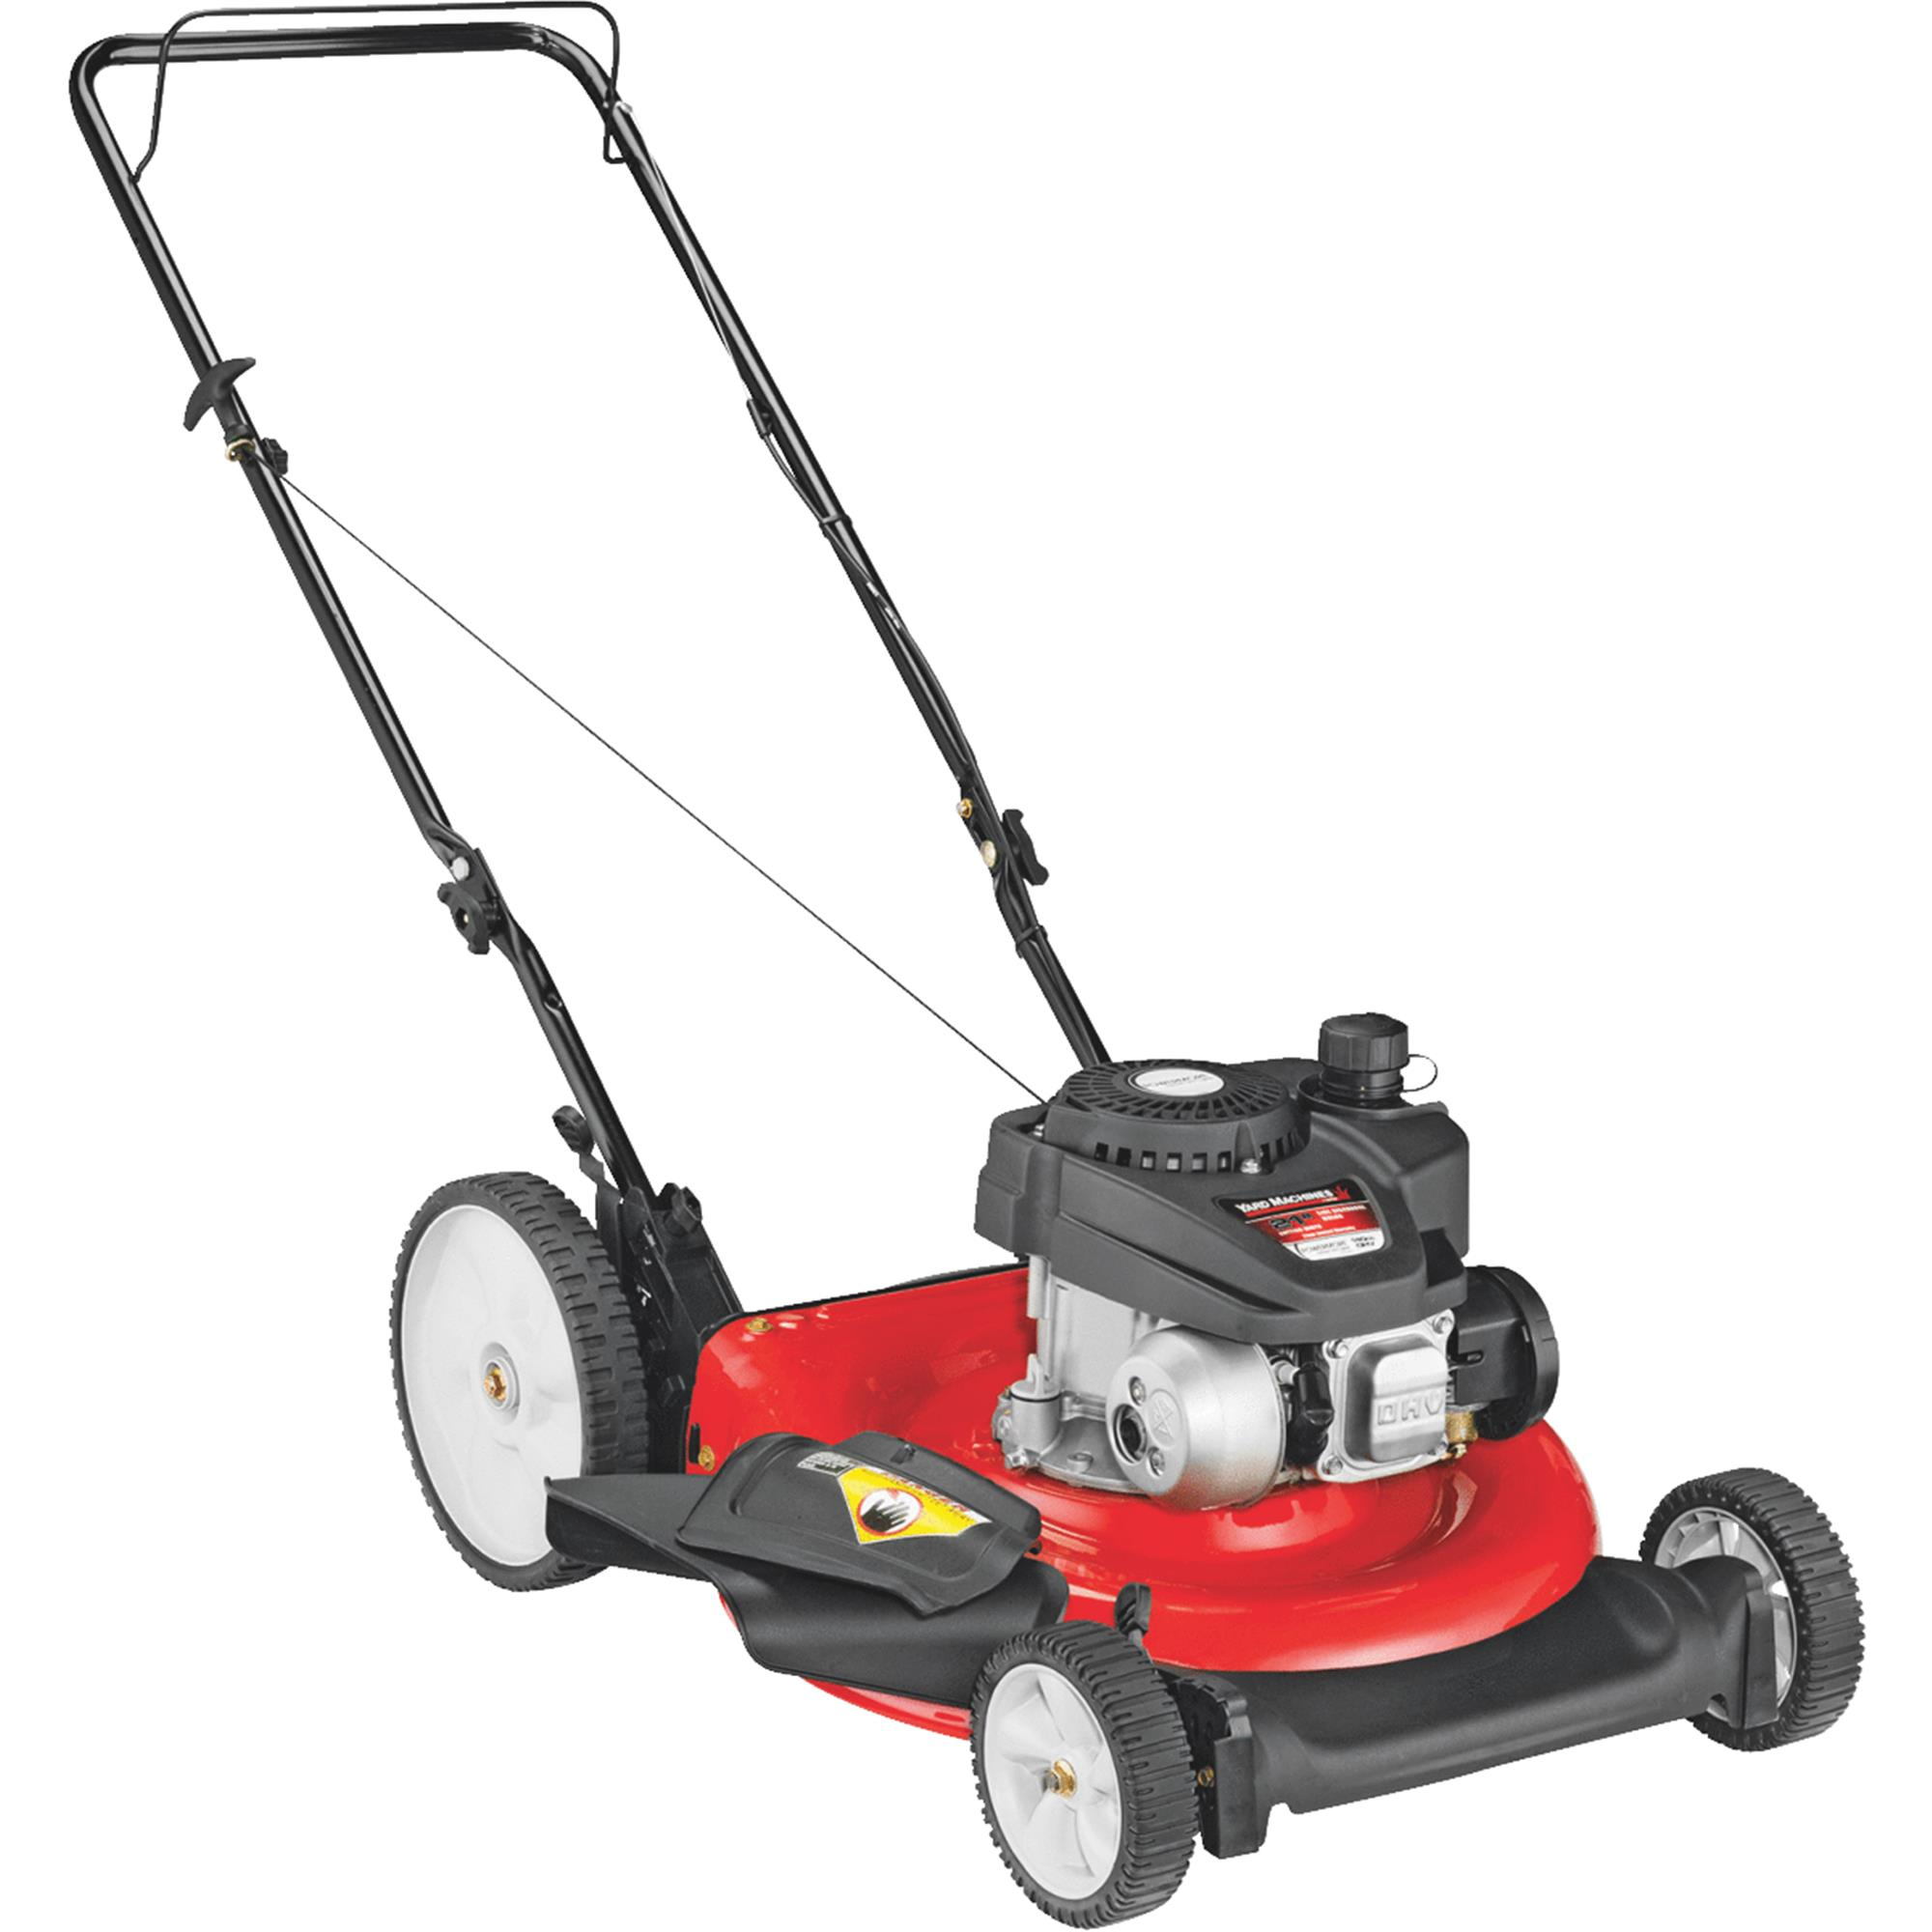 Yard Machines 21 In. High Wheel Push Gas Lawn Mower